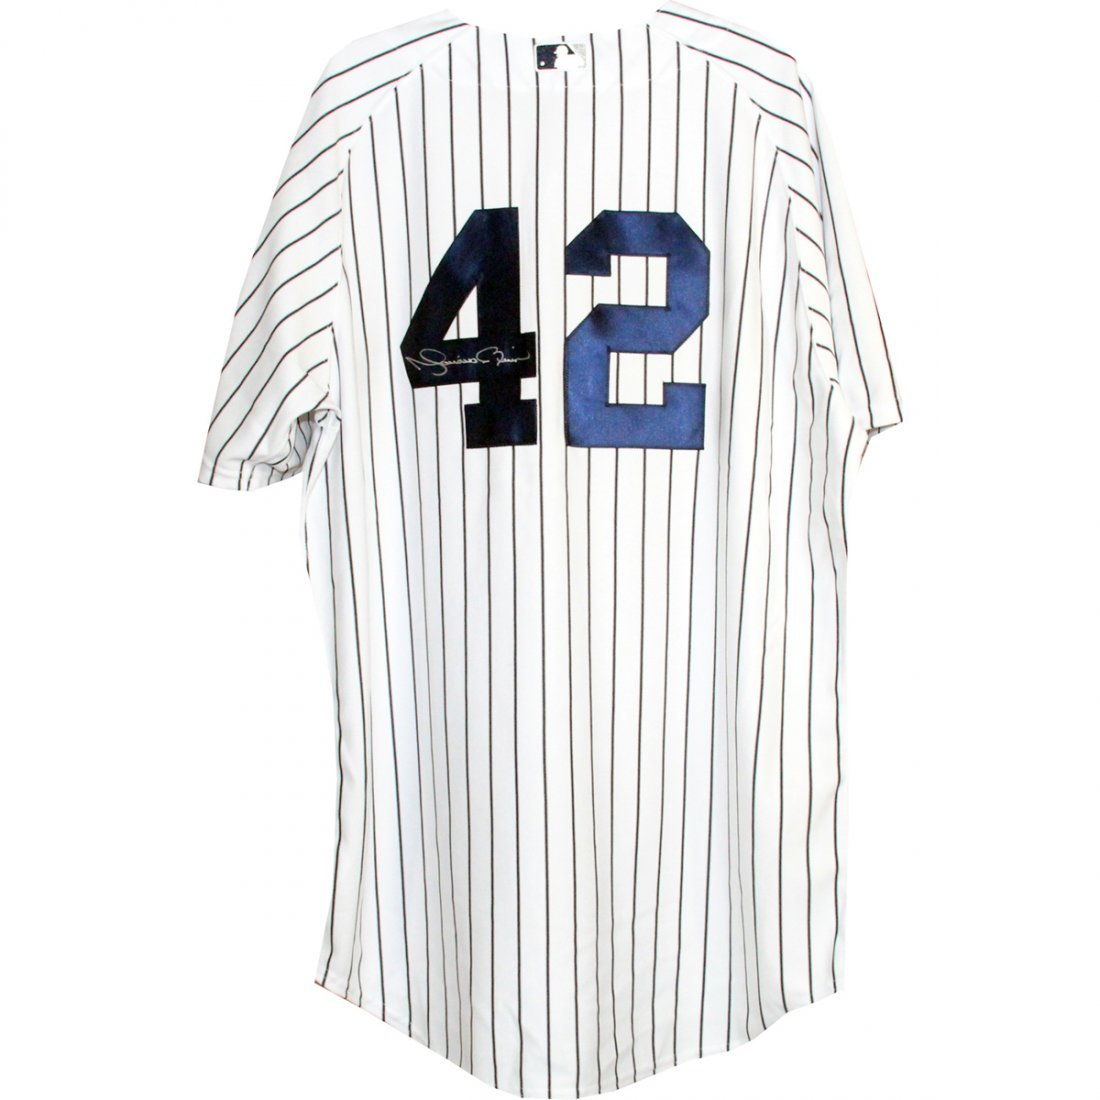 Mariano Rivera Authentic Yankees Home Jersey (Signed on